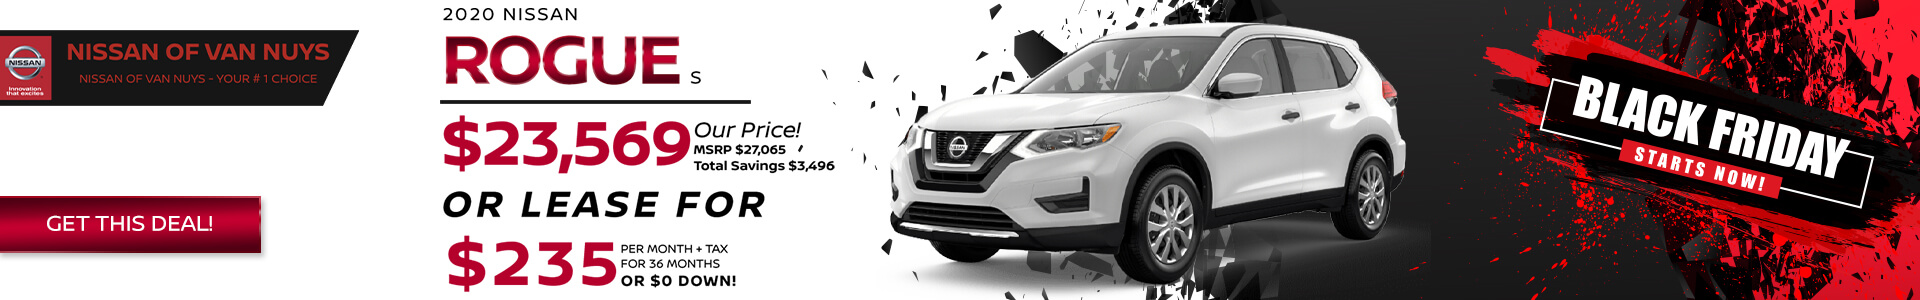 Nissan Rogue - Lease for $189